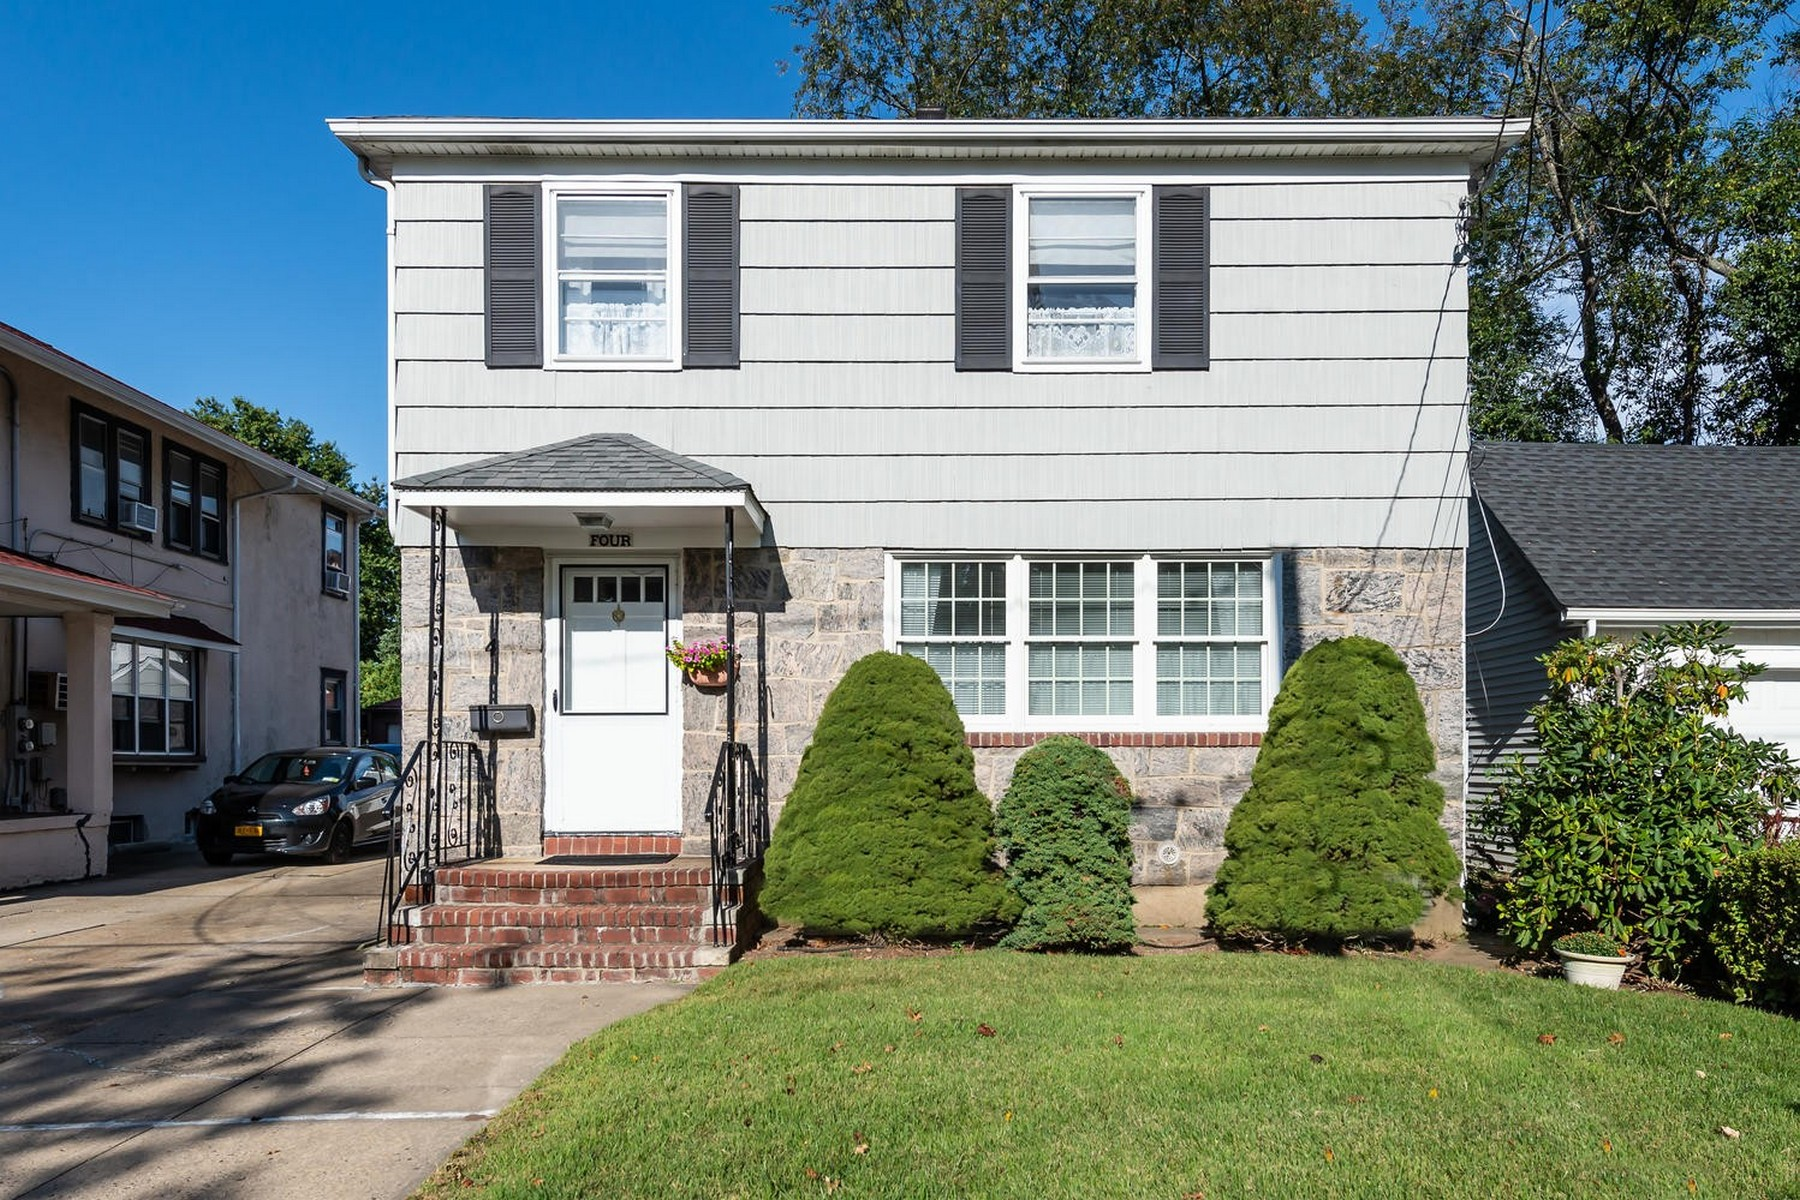 Single Family Homes for Sale at Floral Park 4 Cedar St Floral Park, New York 11001 United States